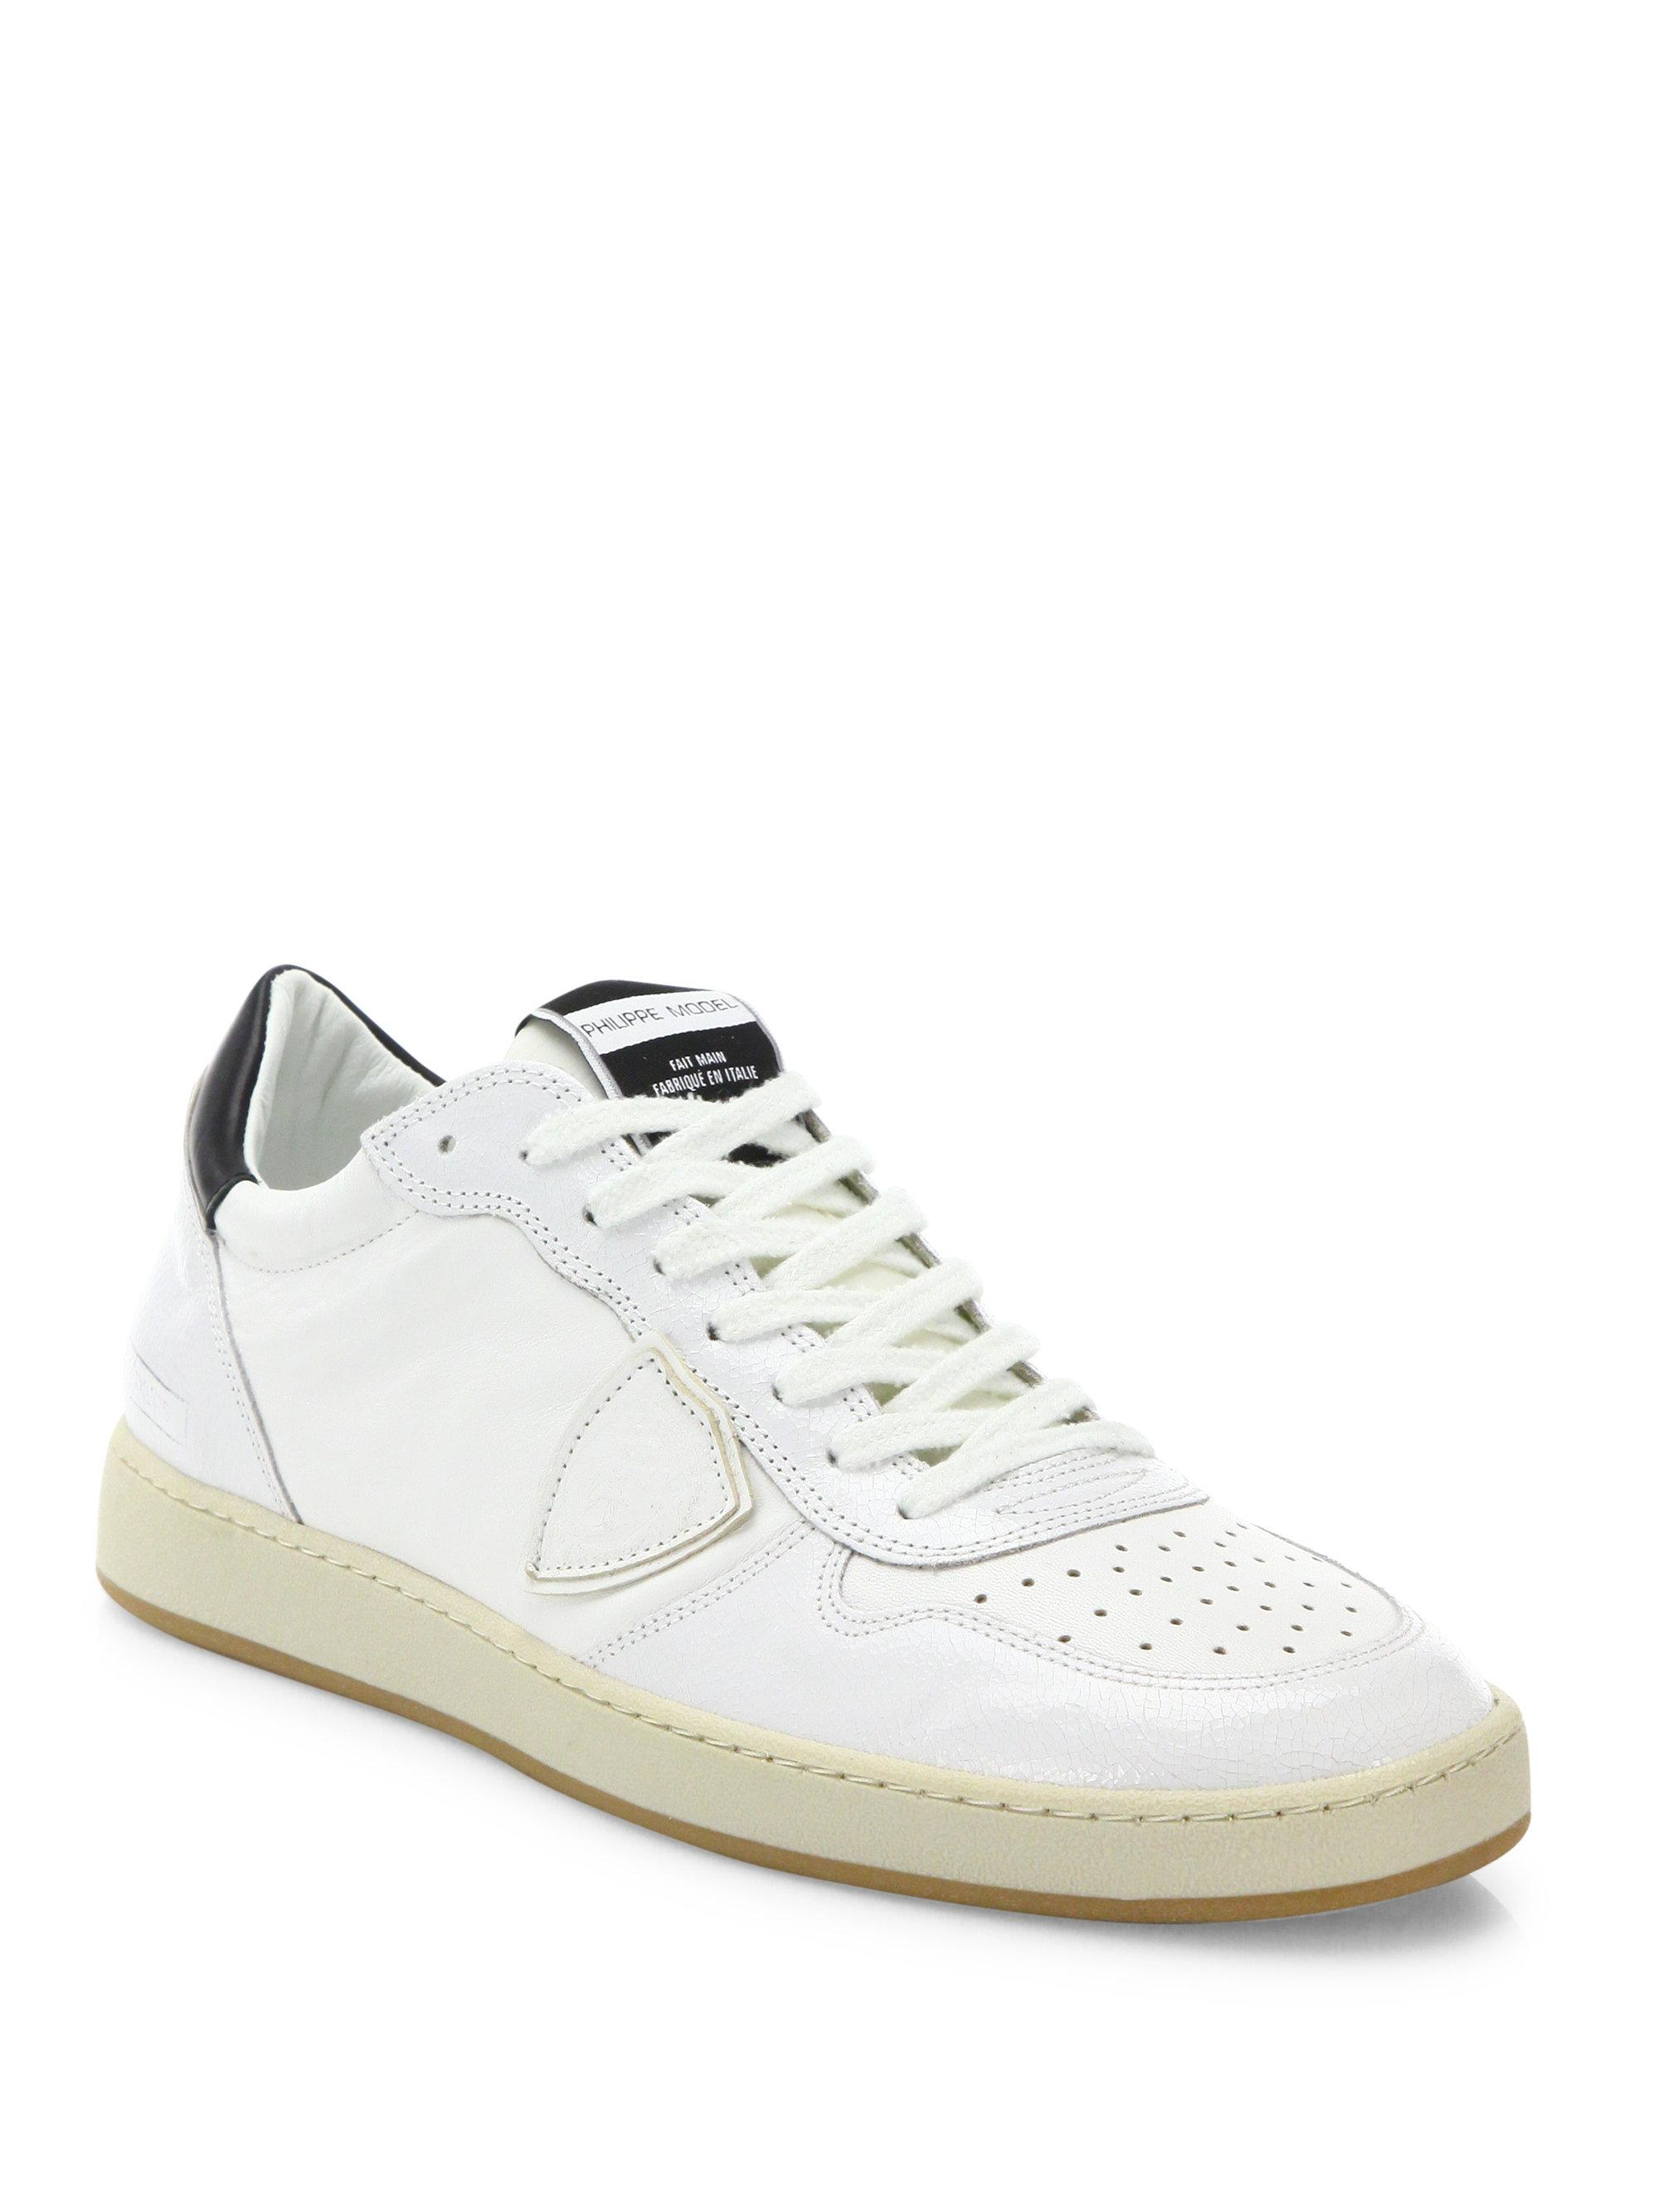 Lakers L sneakers Philippe Model 36swhvZHn0